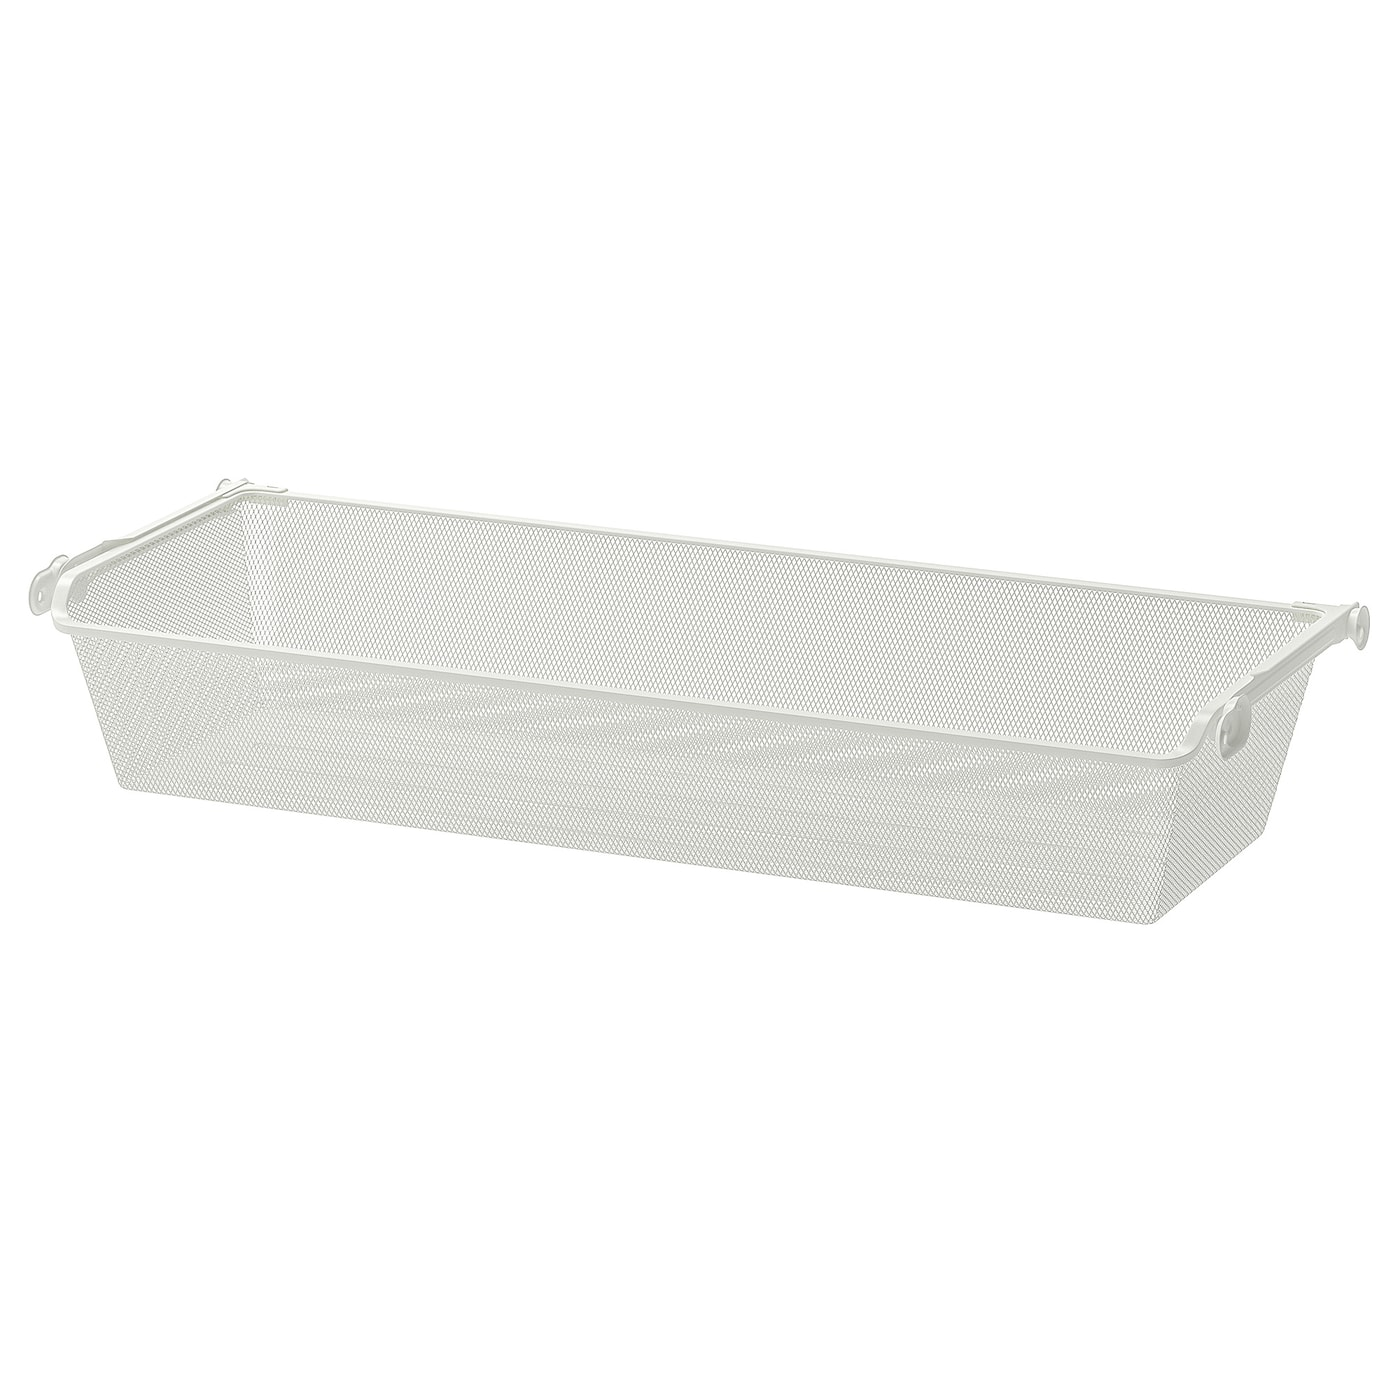 IKEA KOMPLEMENT mesh basket with pull-out rail